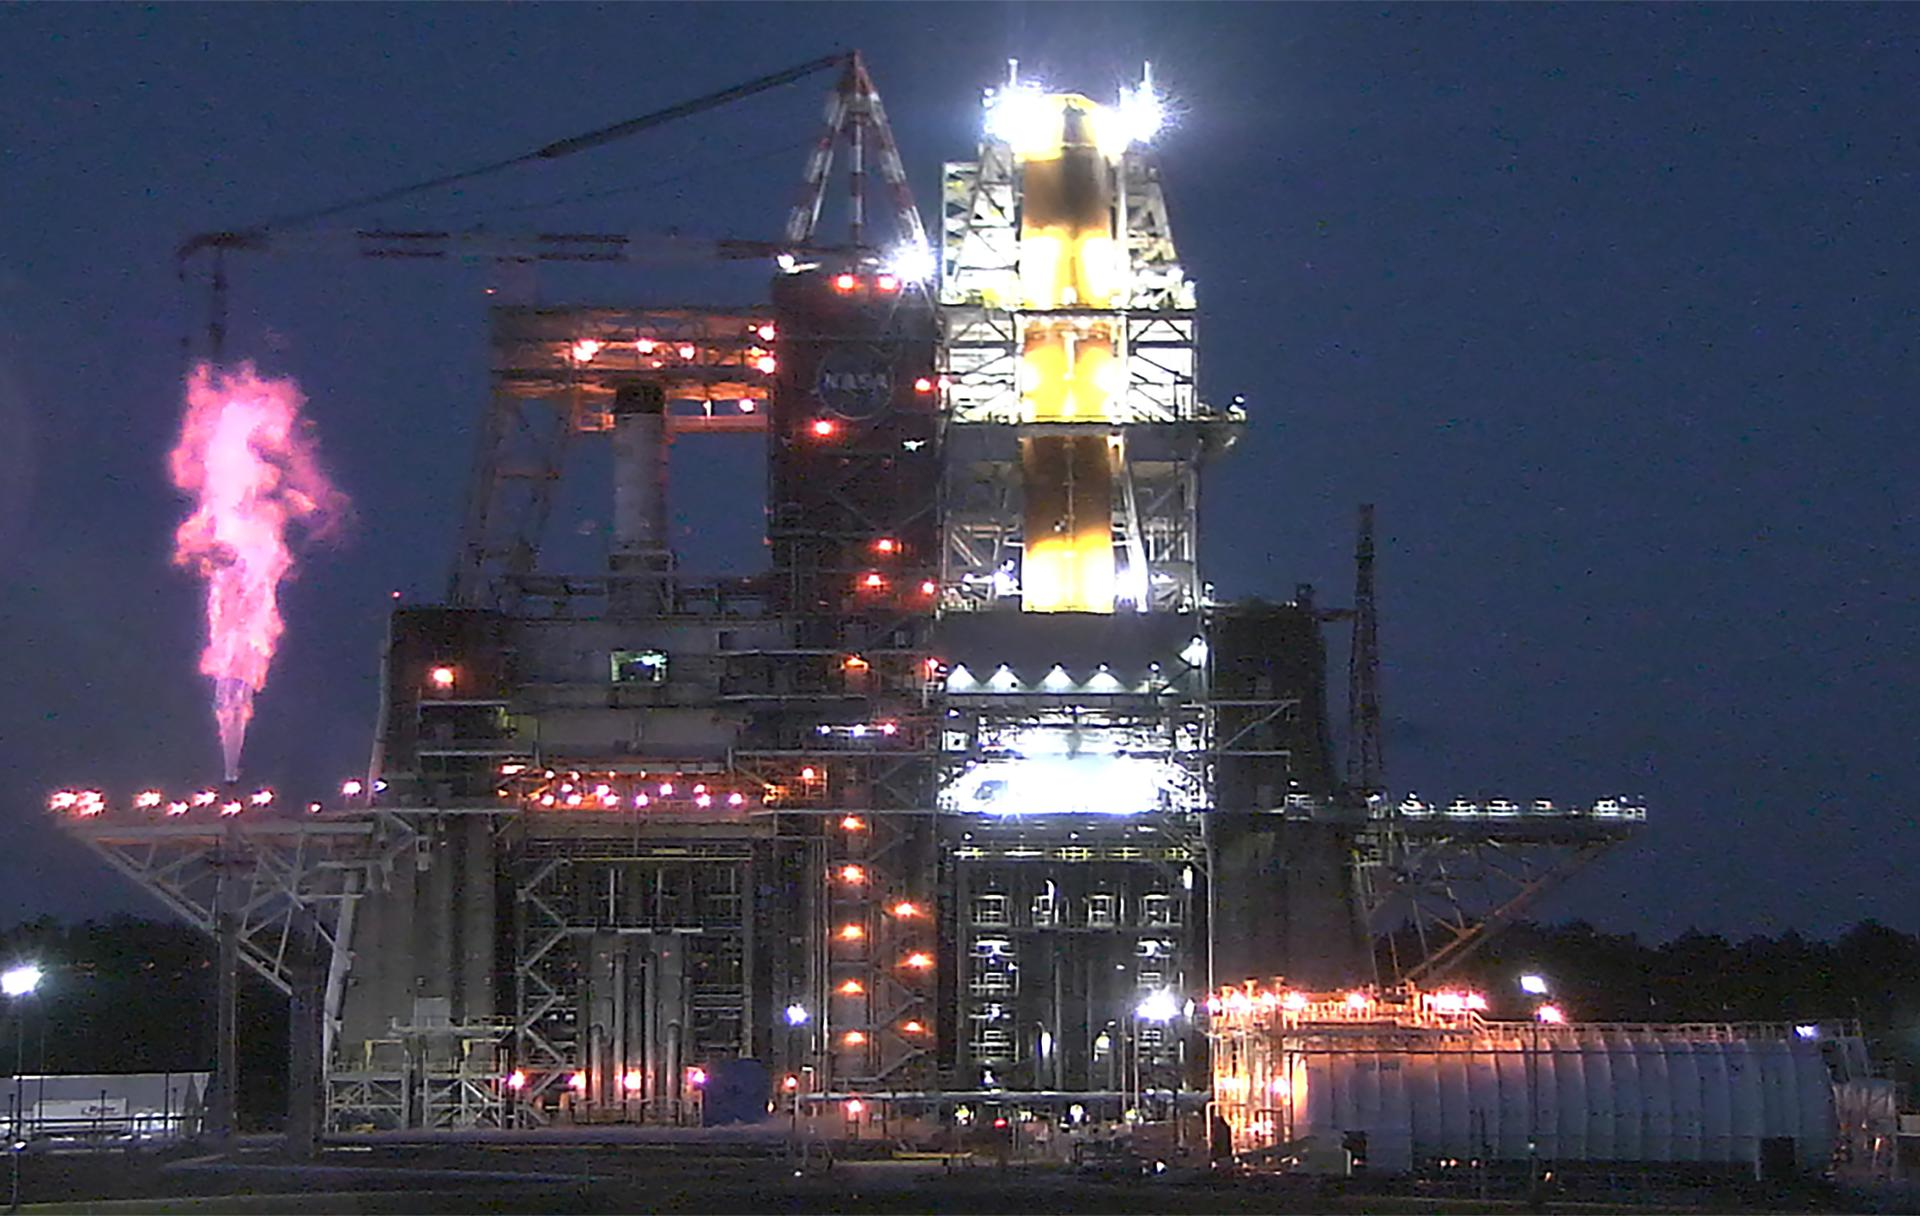 NASA is targeting a two-hour test window that opens at 5 p.m. EST Saturday, Jan. 16, for the hot fire test of NASA's Space Launch System (SLS) rocket core stage at the agency's Stennis Space Center near Bay St. Louis, Mississippi.